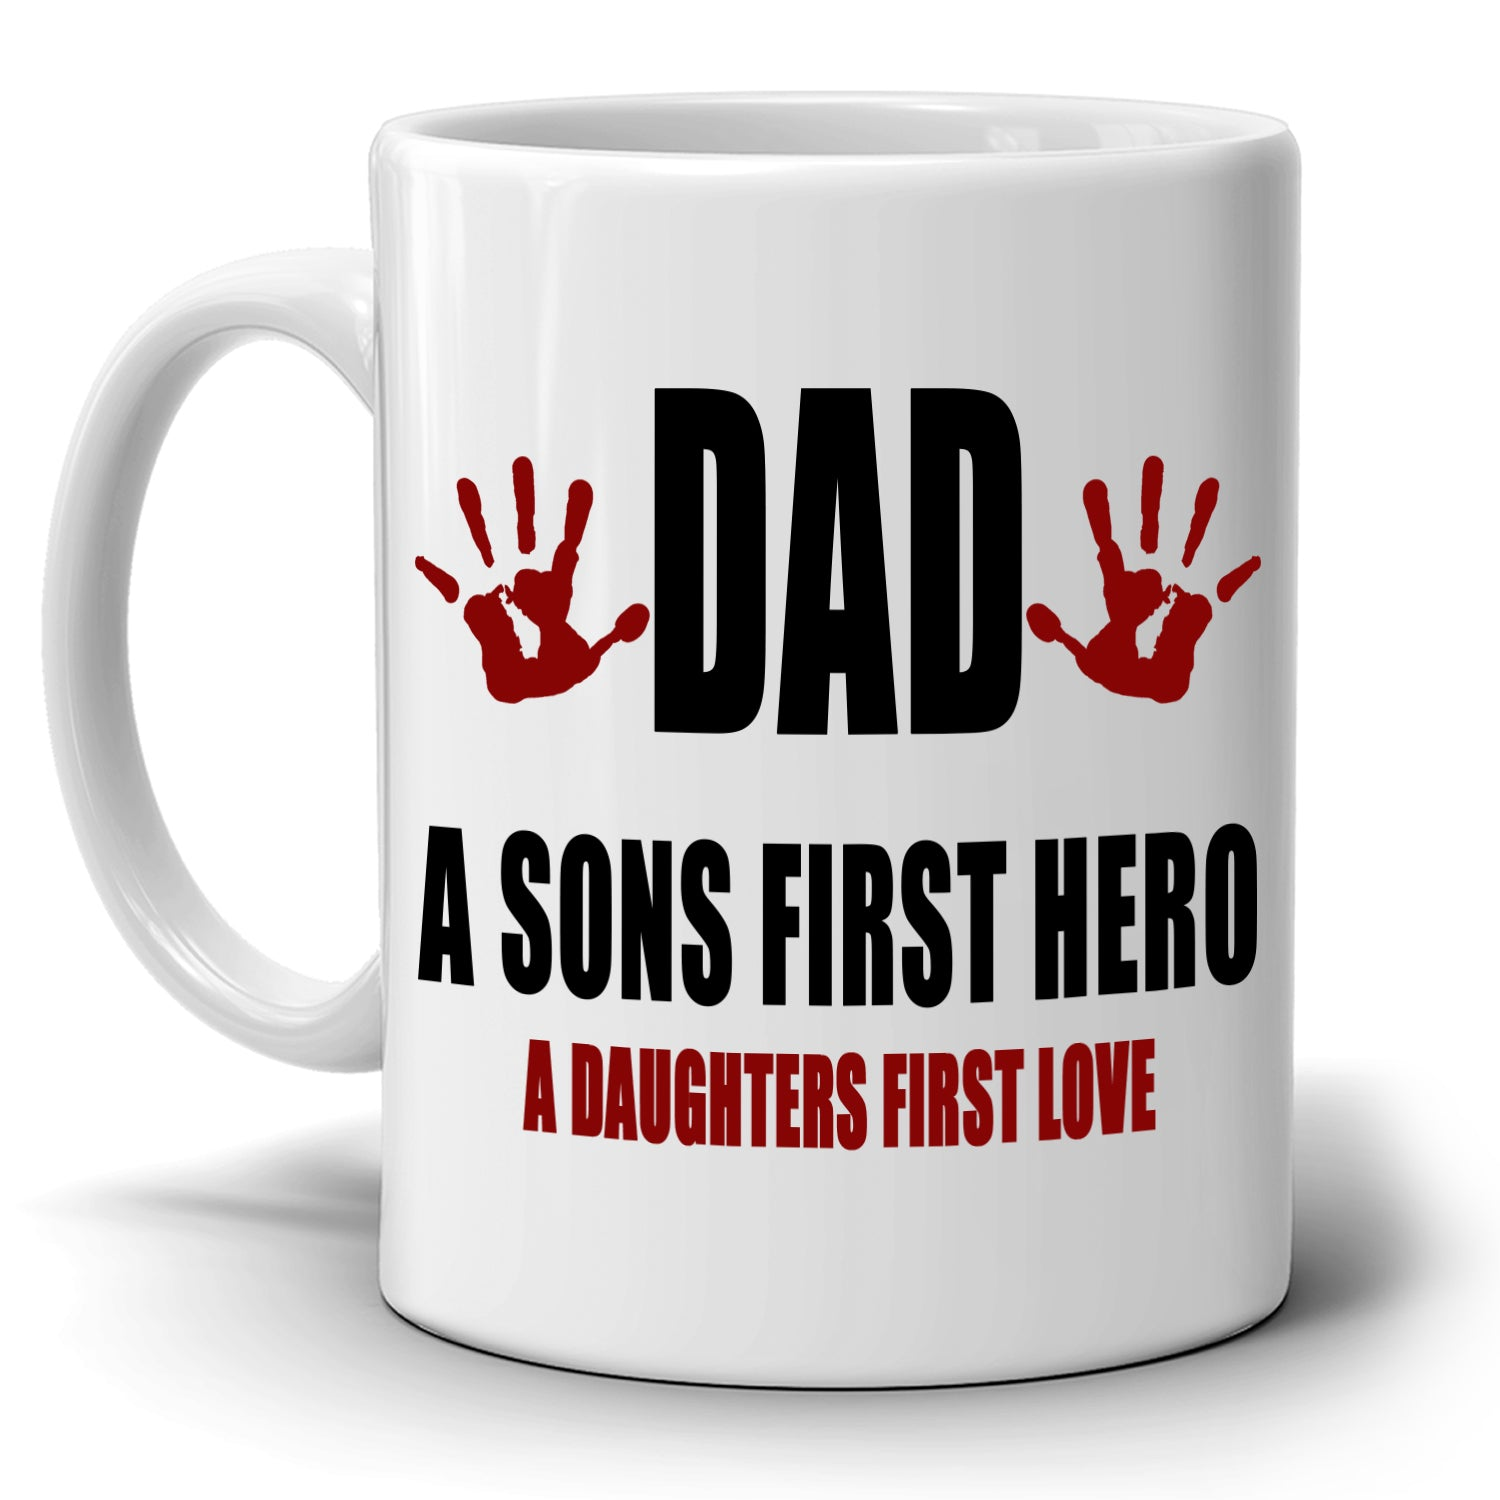 Fathers Day Birthday Gifts Mug Dad A Sons First Hero Daughter Love Coffee Cup